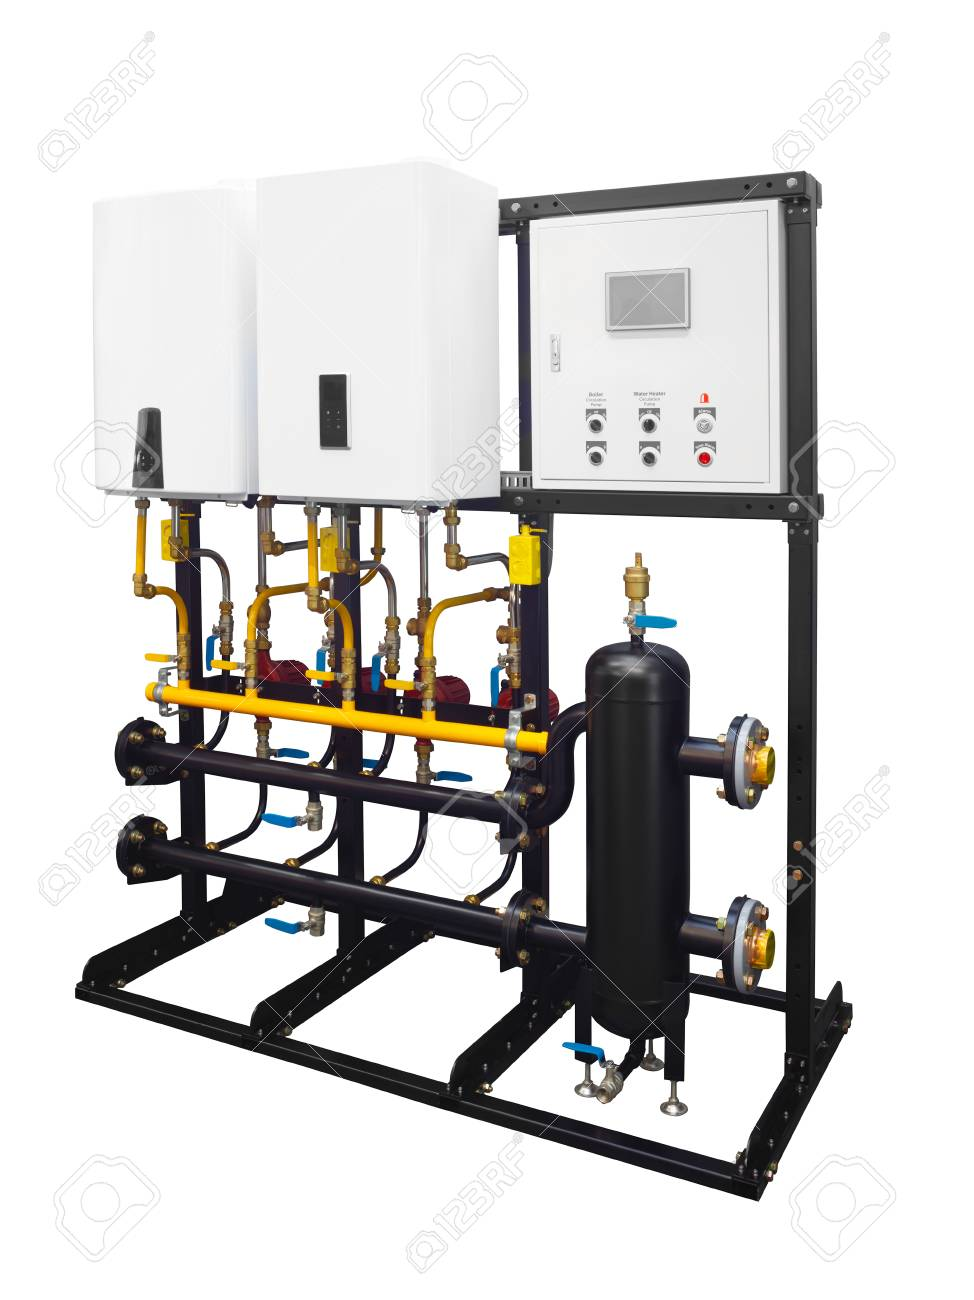 Modern Combined Boiler Room Gas Electric Cascade System For Heating ...